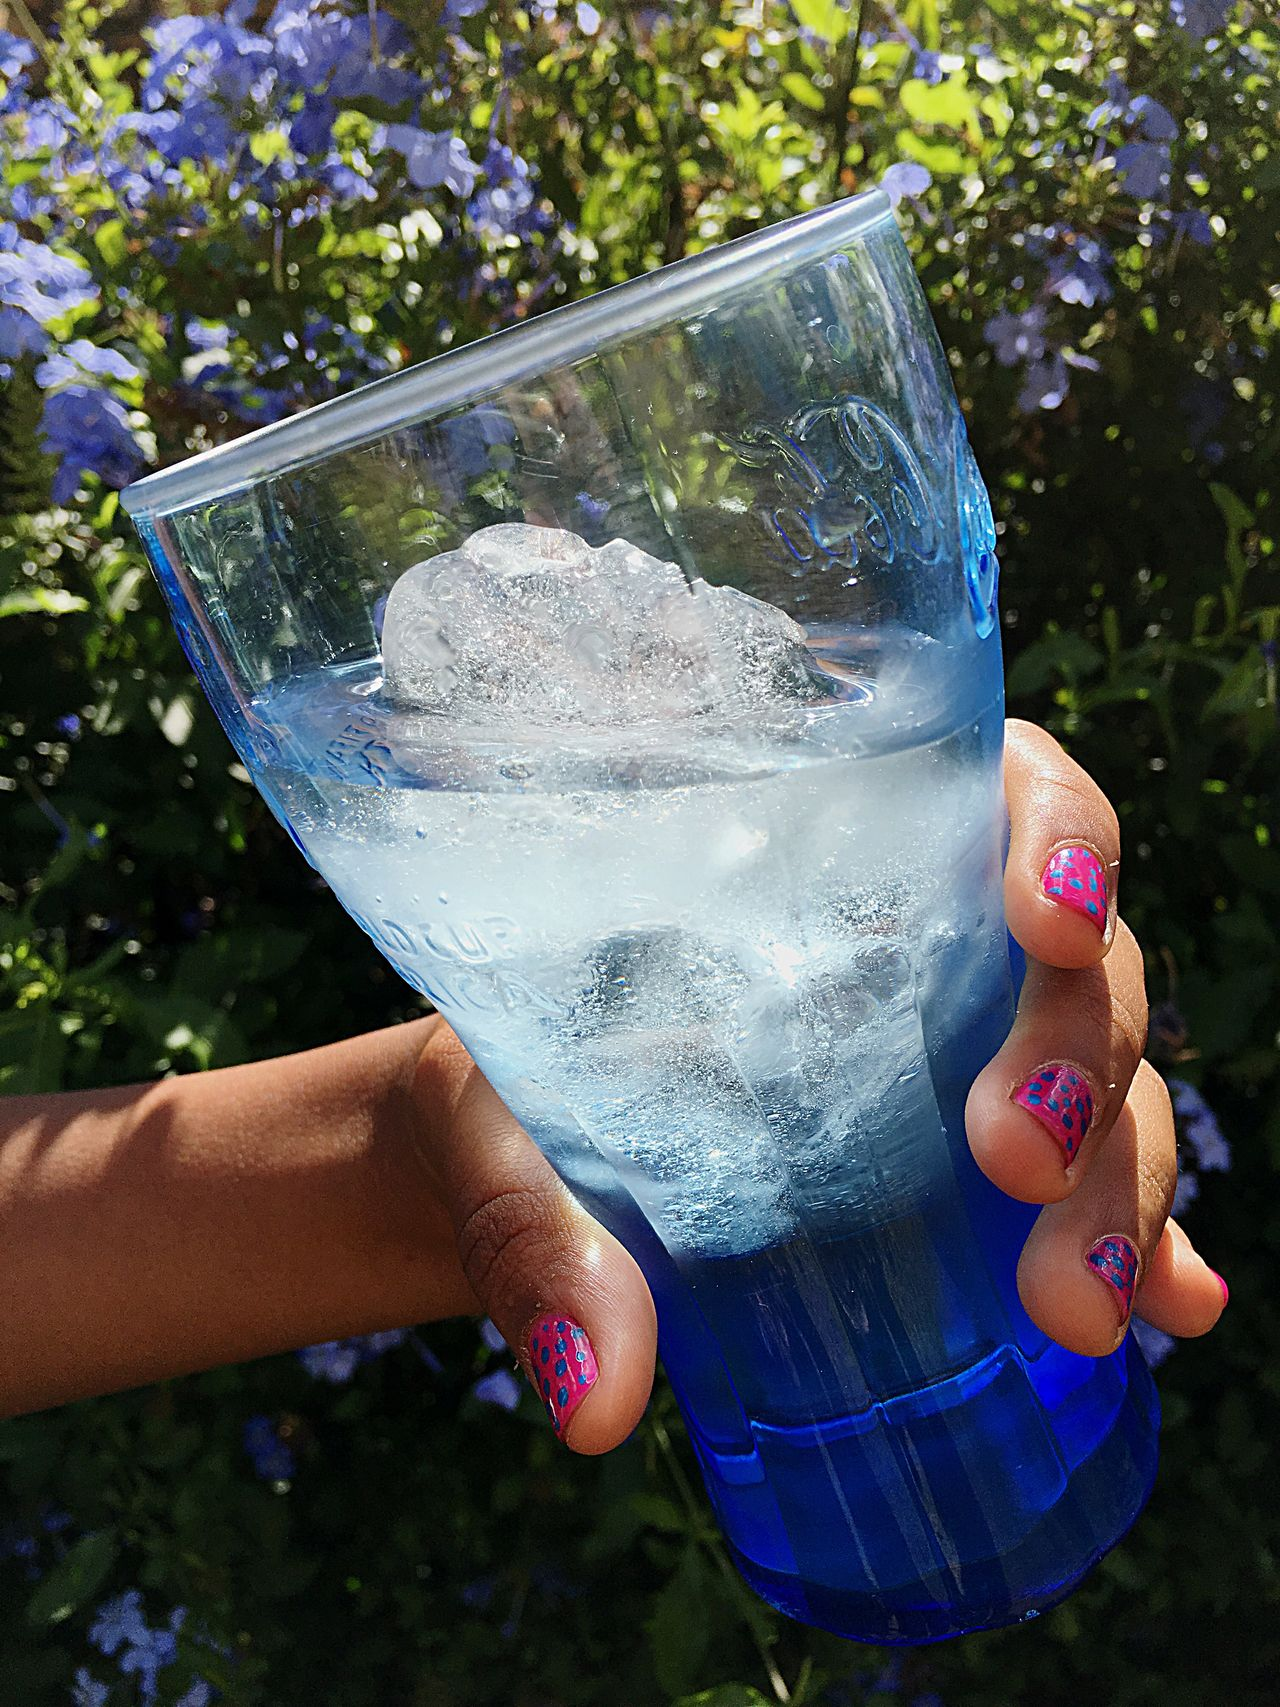 Iced Water Refreshing Water Drinking Glass Blue Glass Pretty Nails Refreshing :) Sunny Garden